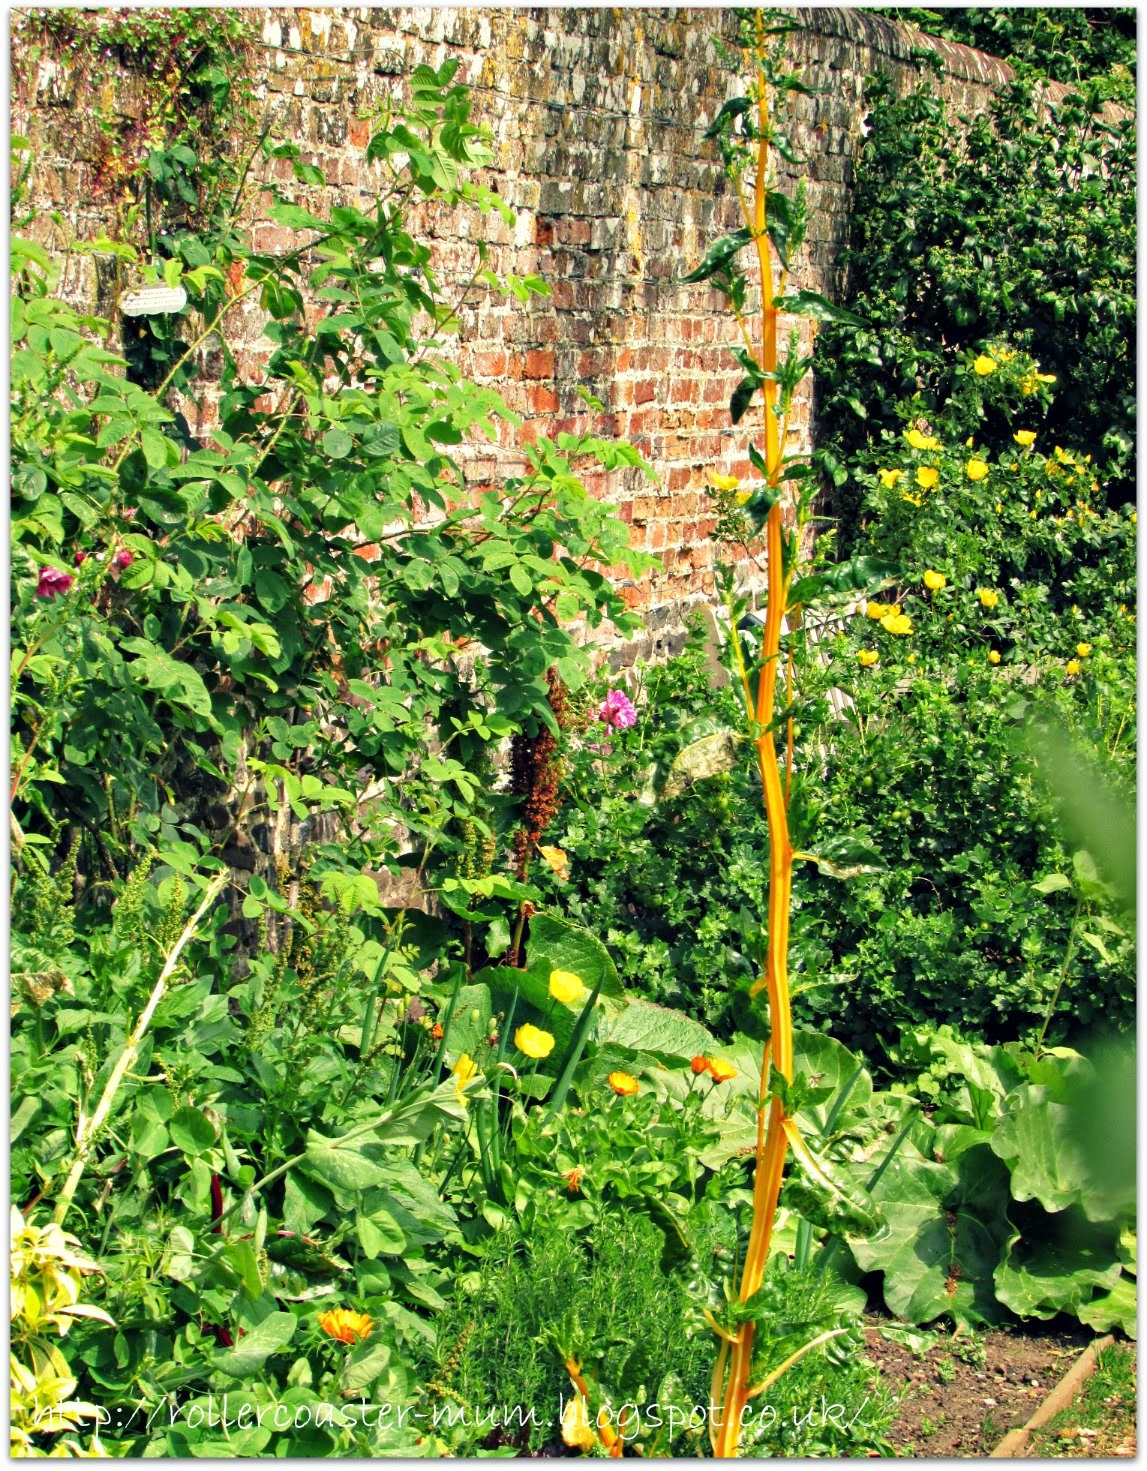 #alphabetphoto, G is for Garden, Petersfield Physic Garden , walled garden